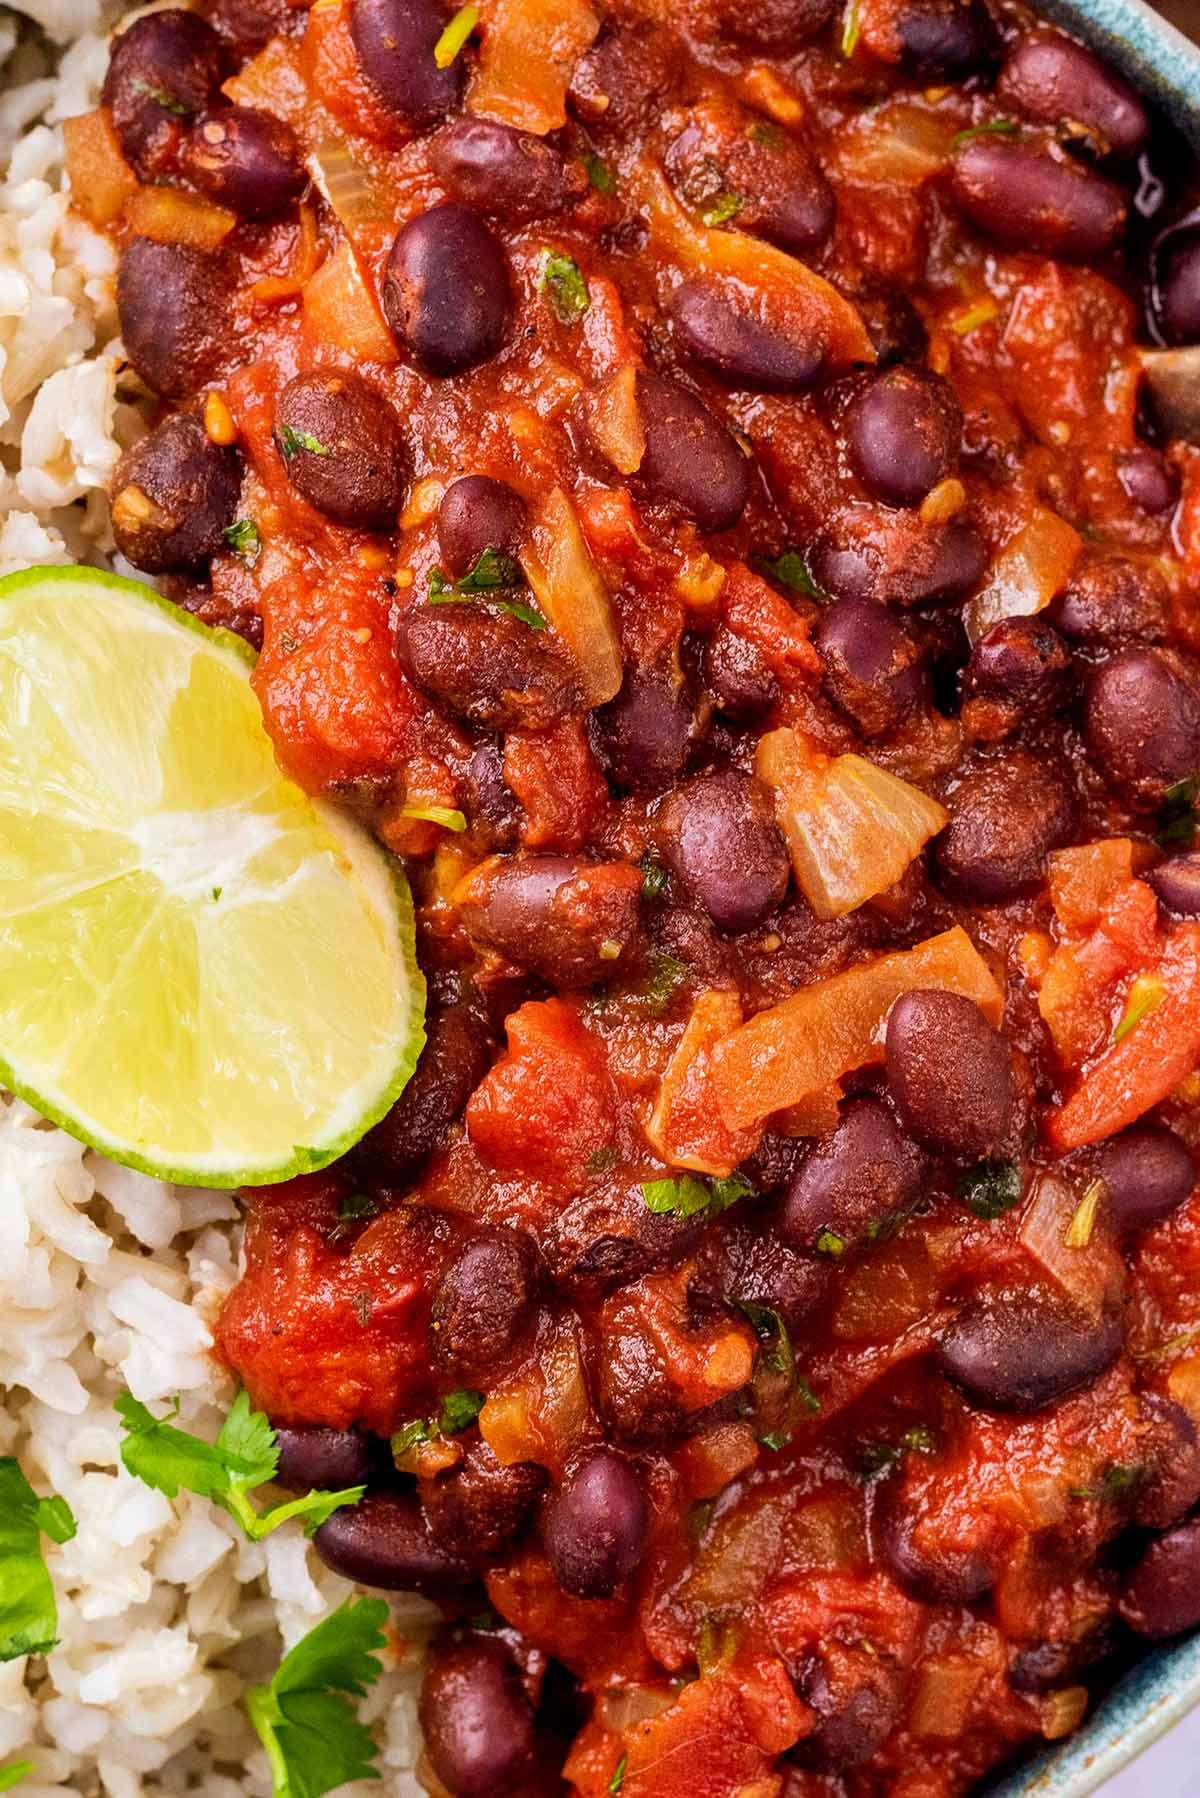 Black beans in a tomato sauce next to some rice with a lime wedge.